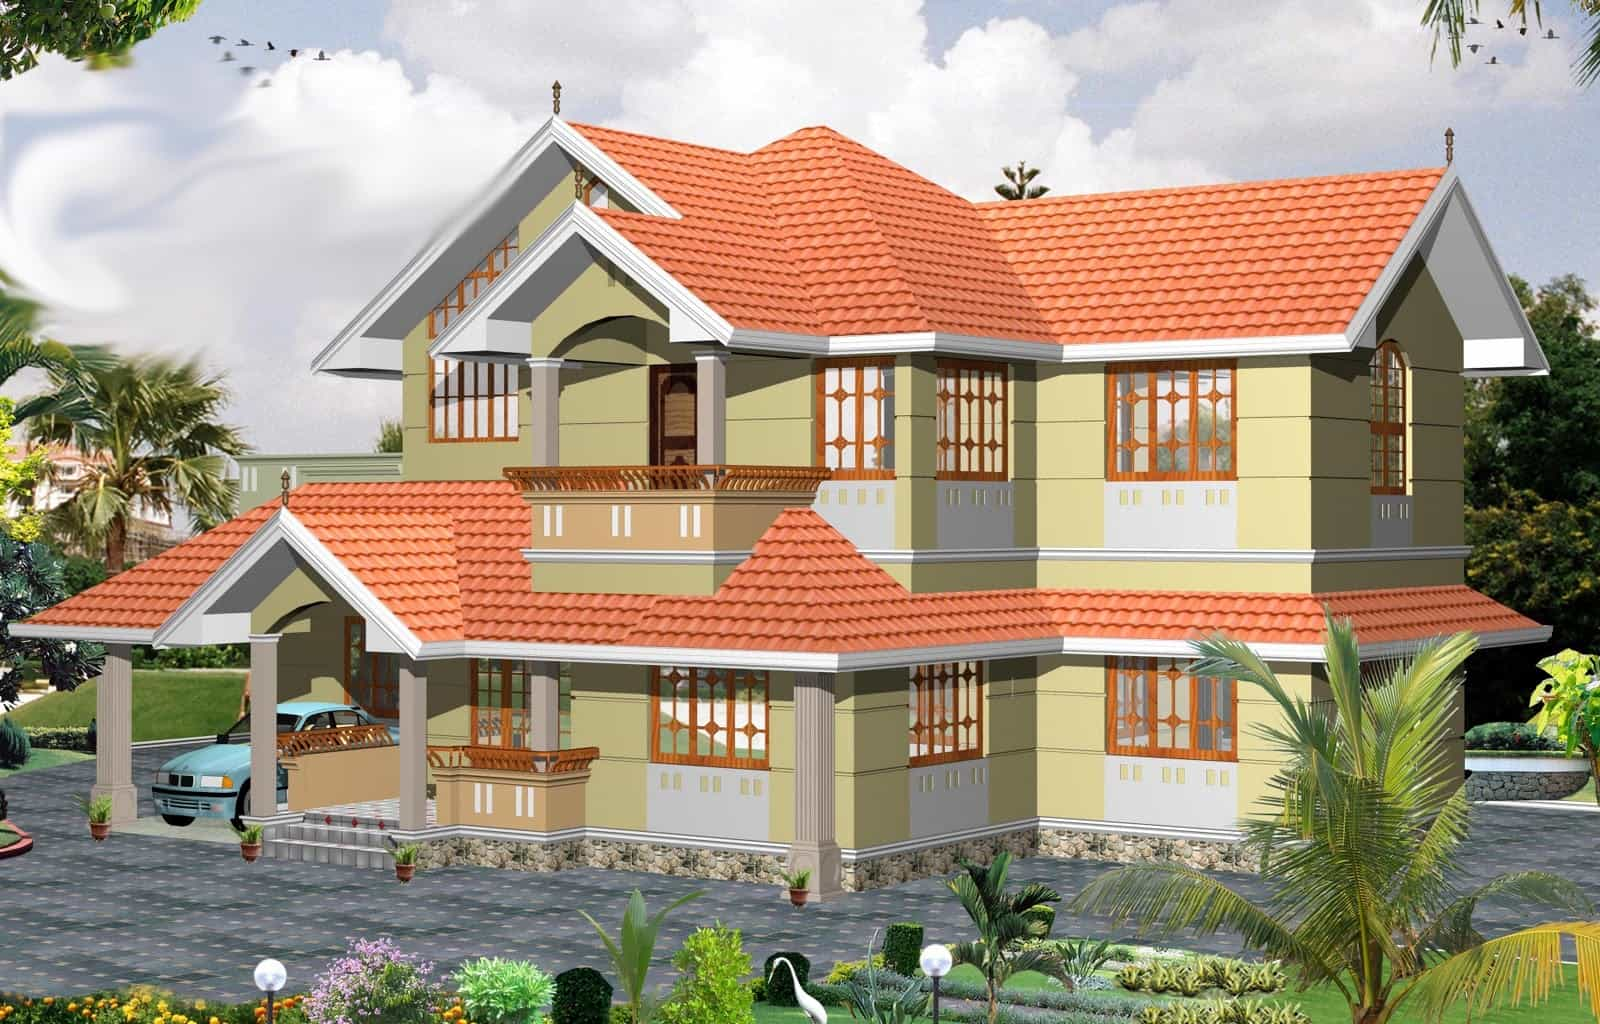 Traditional 3 bhk kerala villa design at 2000 for Home designs 2000 sq ft